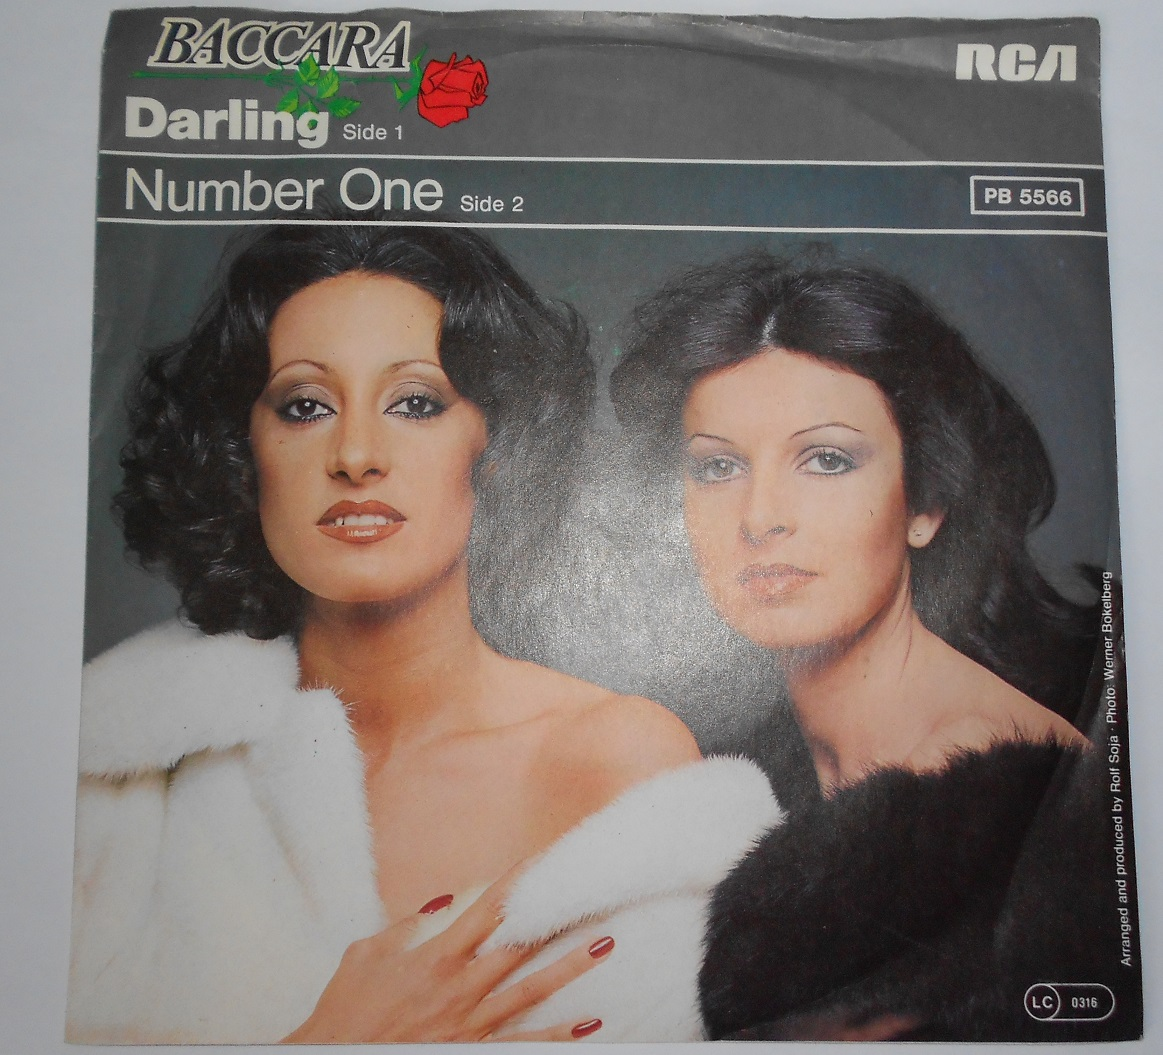 "Baccara - Darling (7"",Single)"